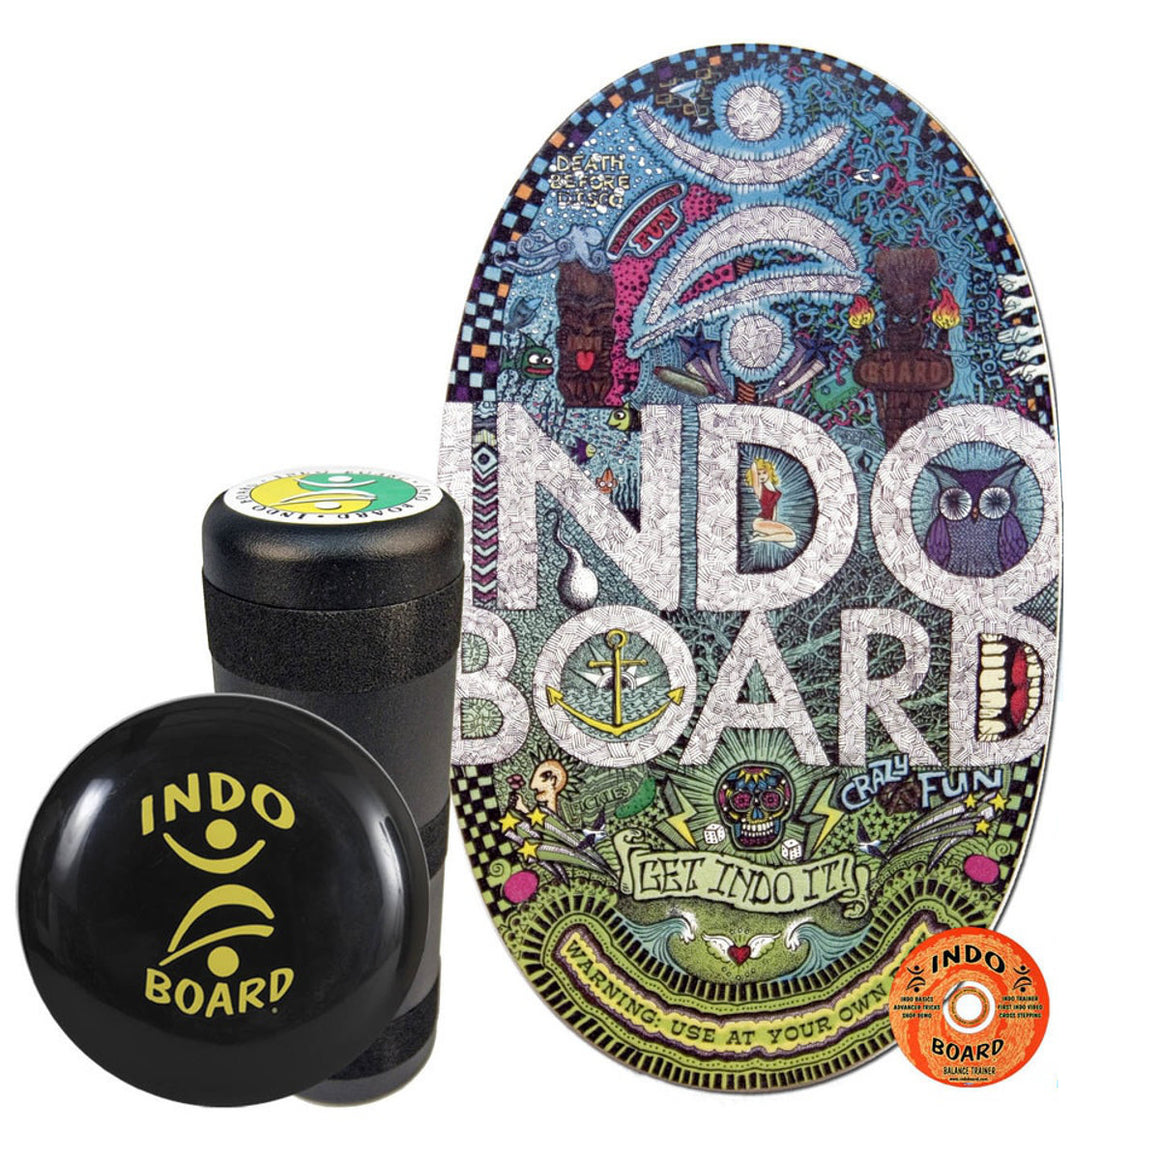 Indo Board Original w/Roller - Doodles - (DECK, ROLLER, CUSHION)